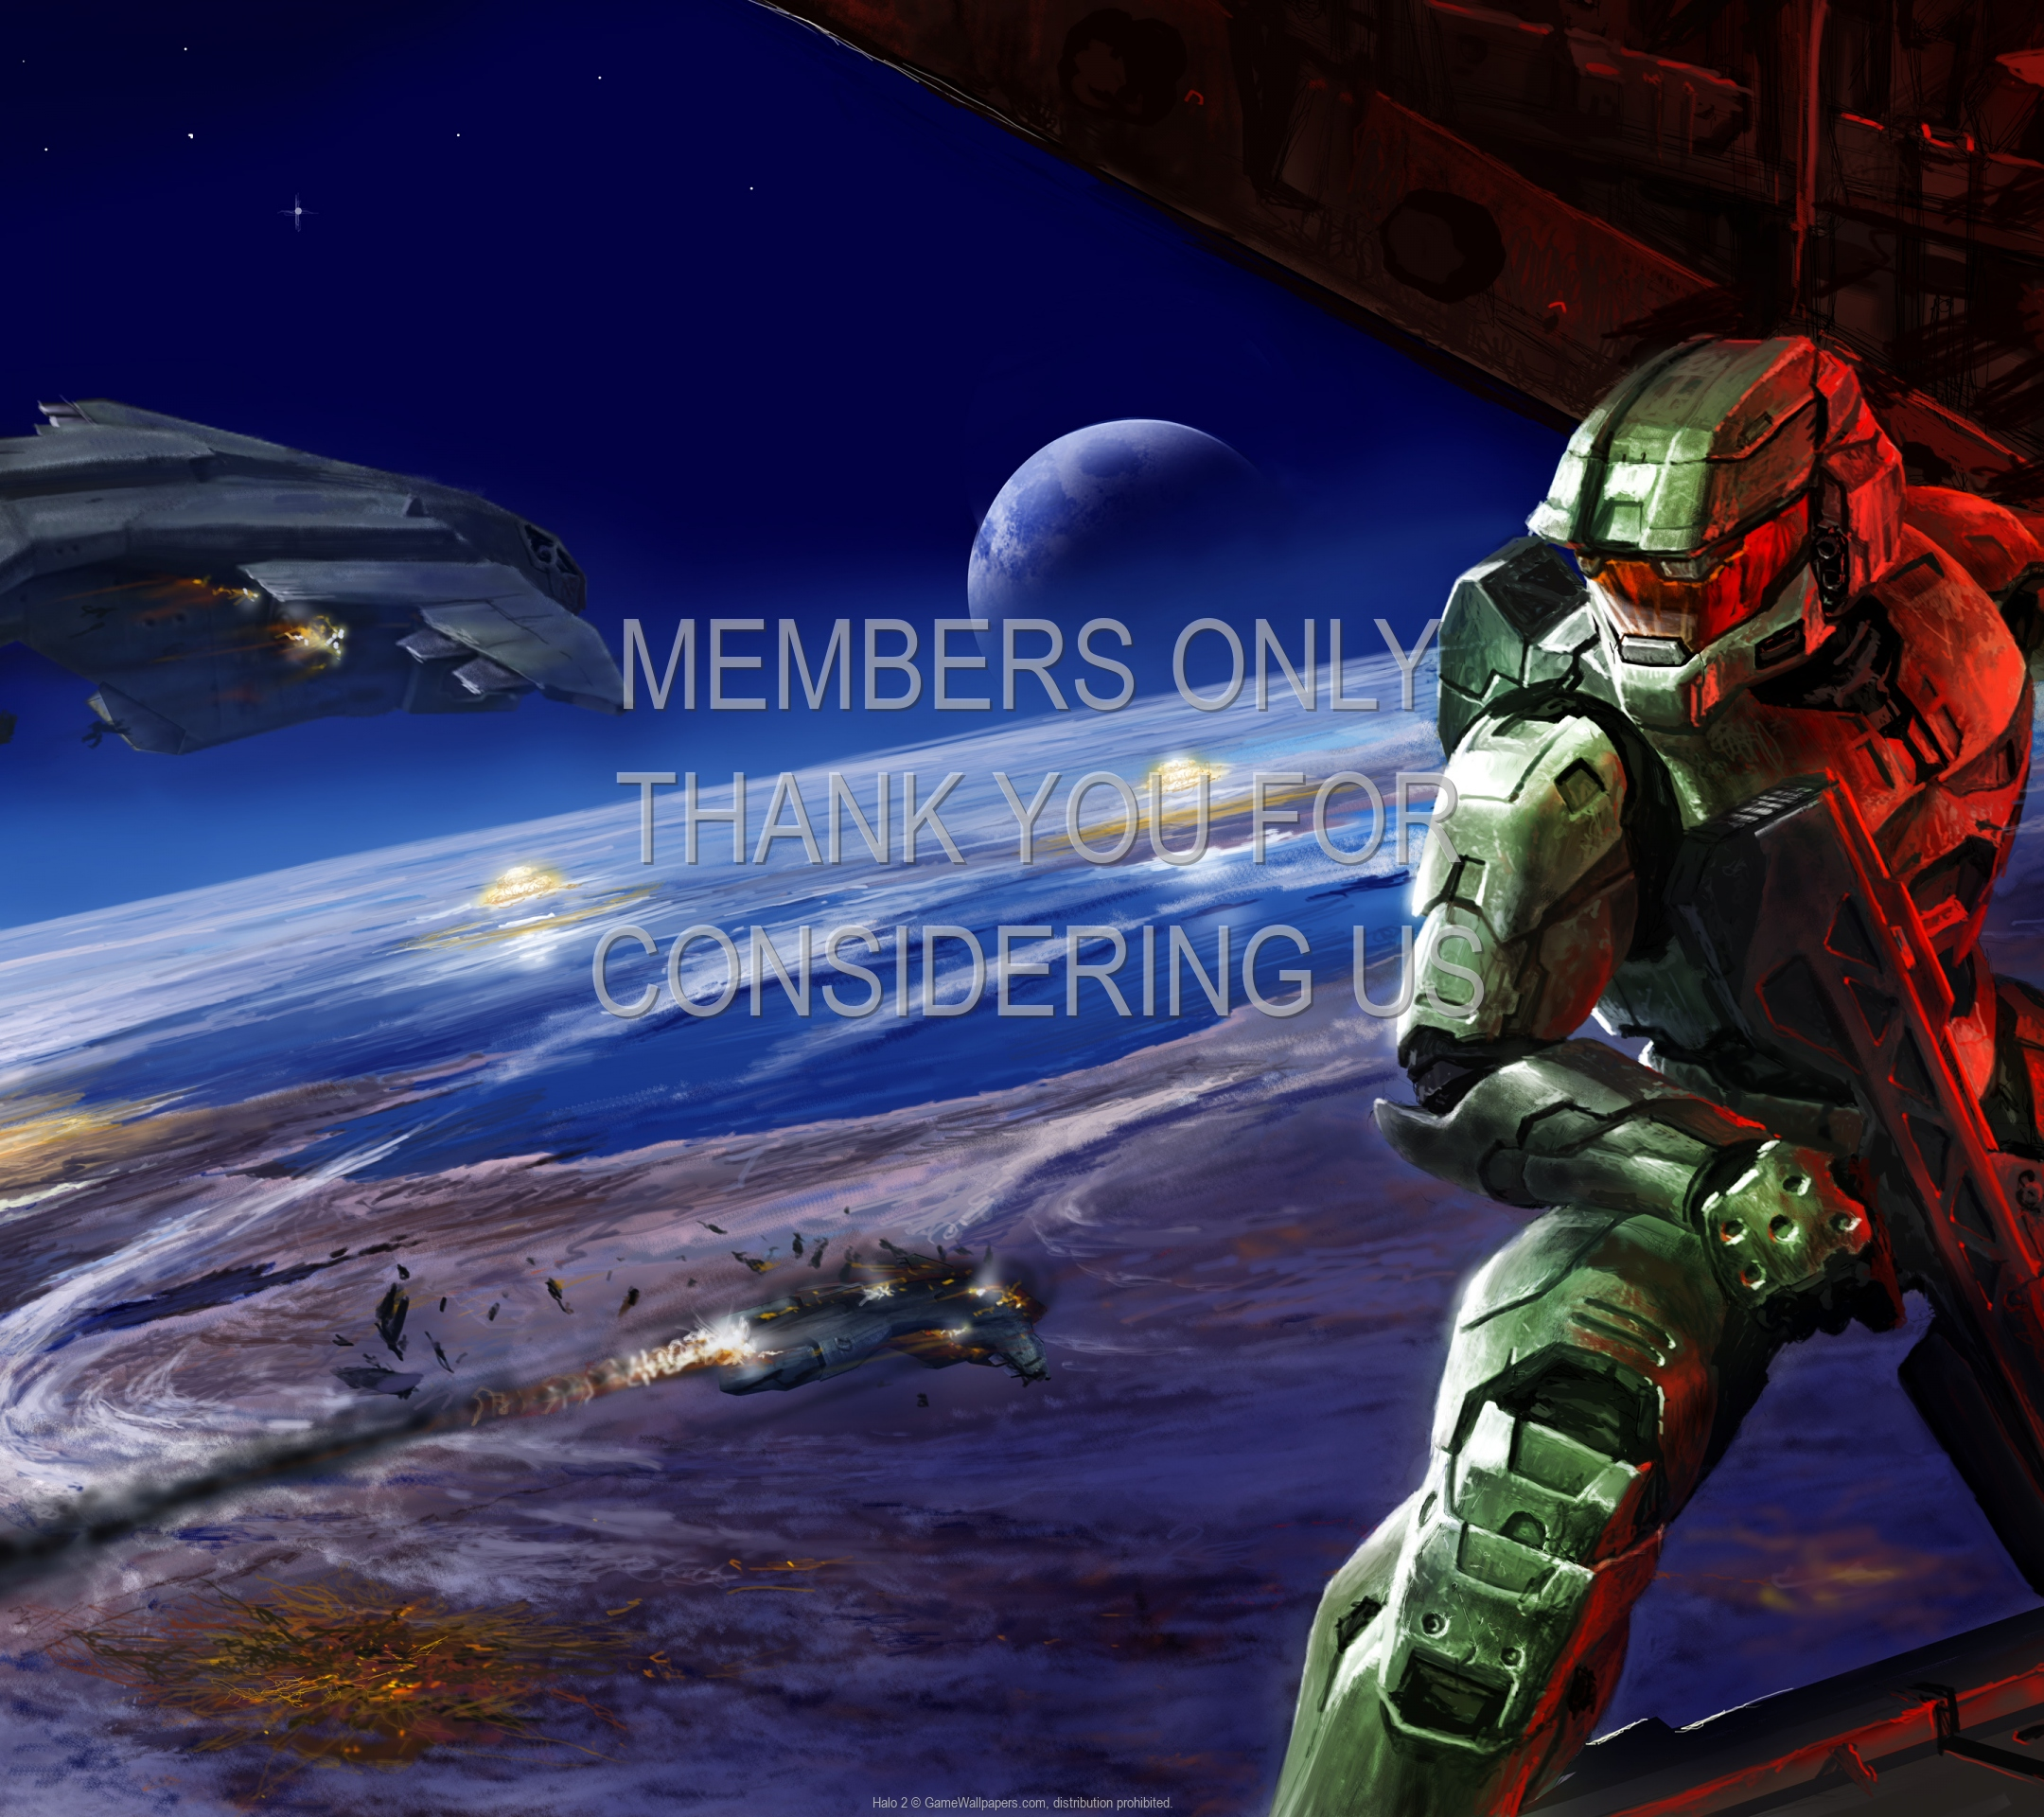 Halo 2 1920x1080 Mobile wallpaper or background 18